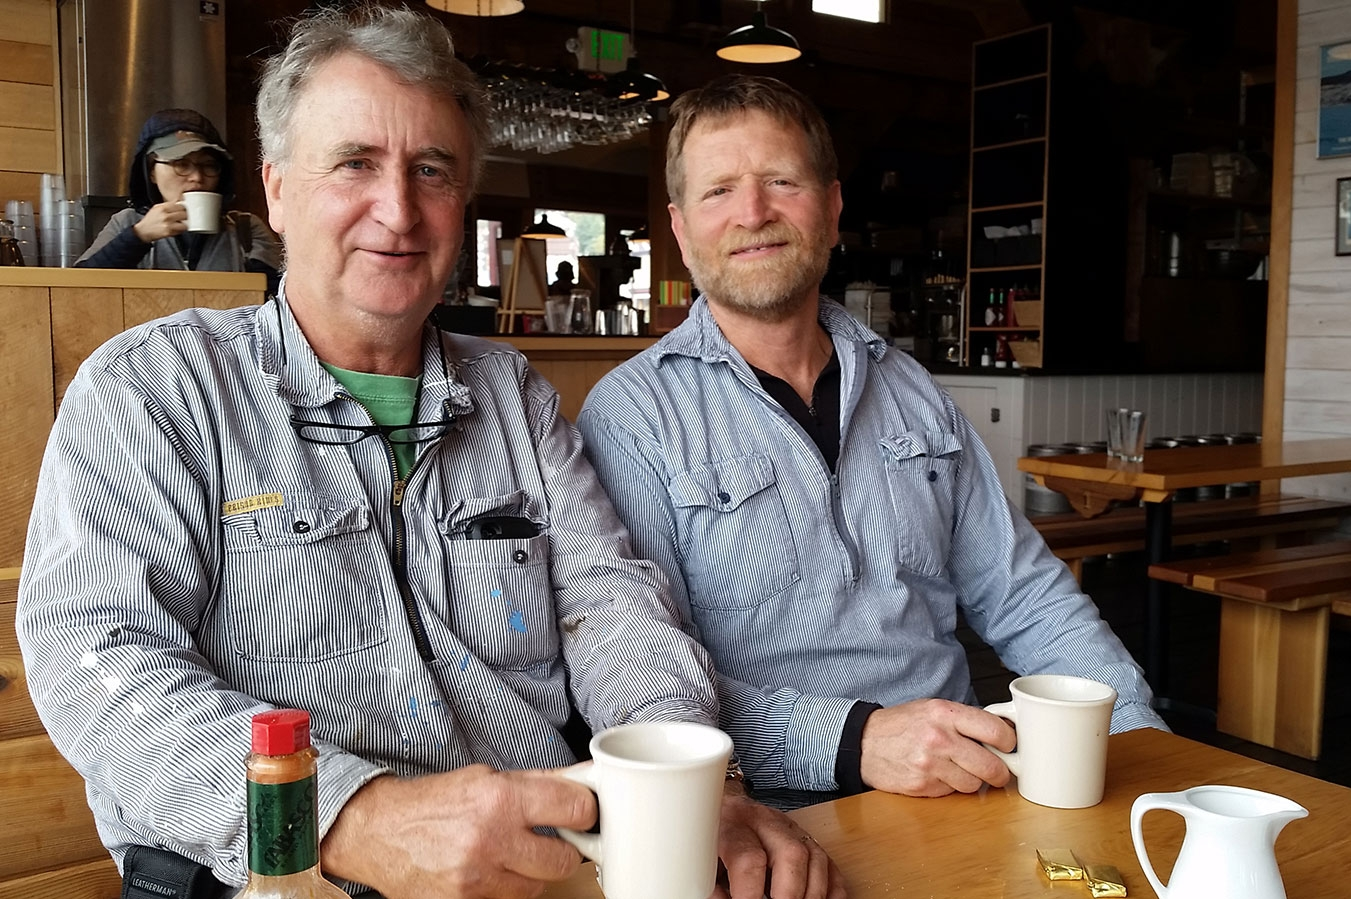 Southeast Sea Kayaks' Owner Greg Thomas shares a cup of coffee with Chuck Slagle at Chuck's restaurant, The Alaska Fish House.